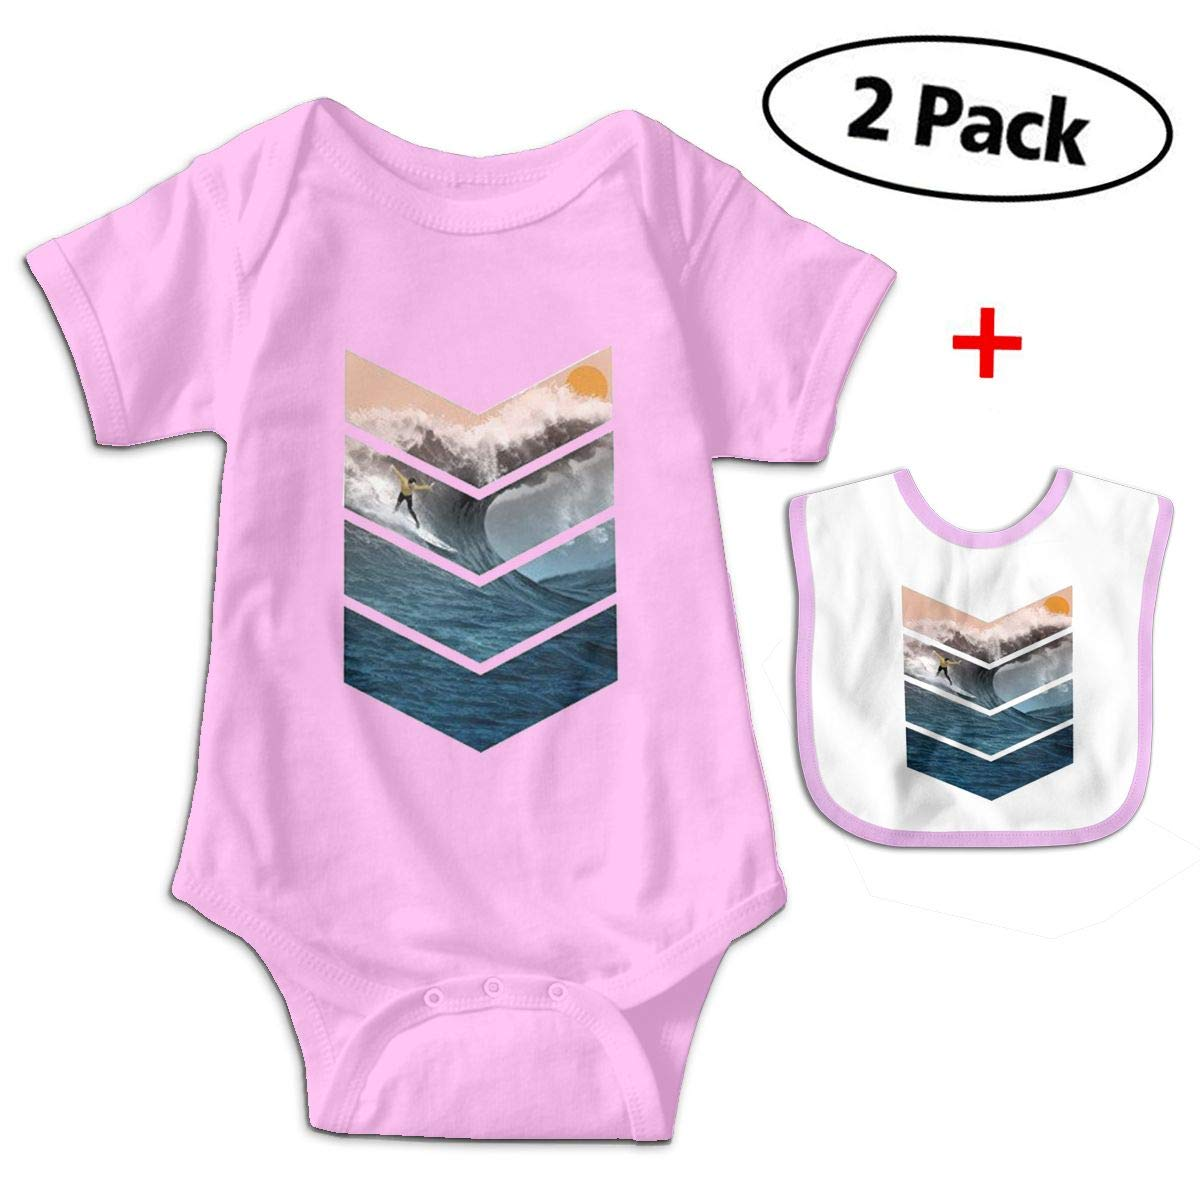 Sunrise Surfer Babys Kids Short Sleeve Bodysuit Outfits for 3-24 Months and Baby Bib